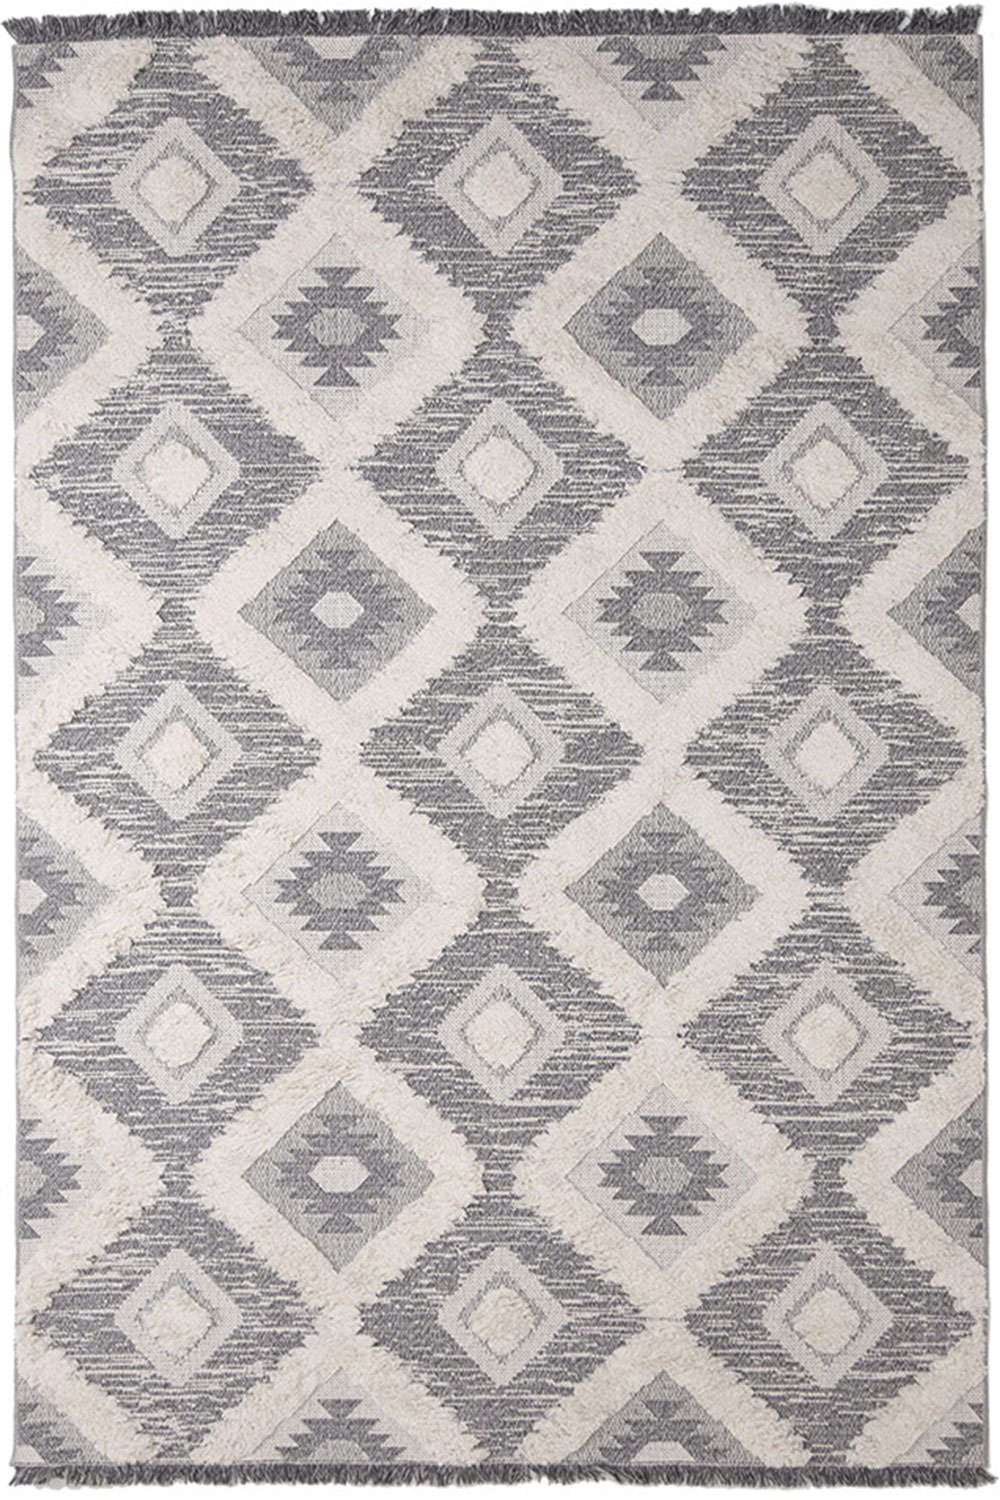 Χαλί Casa Cotton 22266 Grey-Black Royal Carpet 70X150